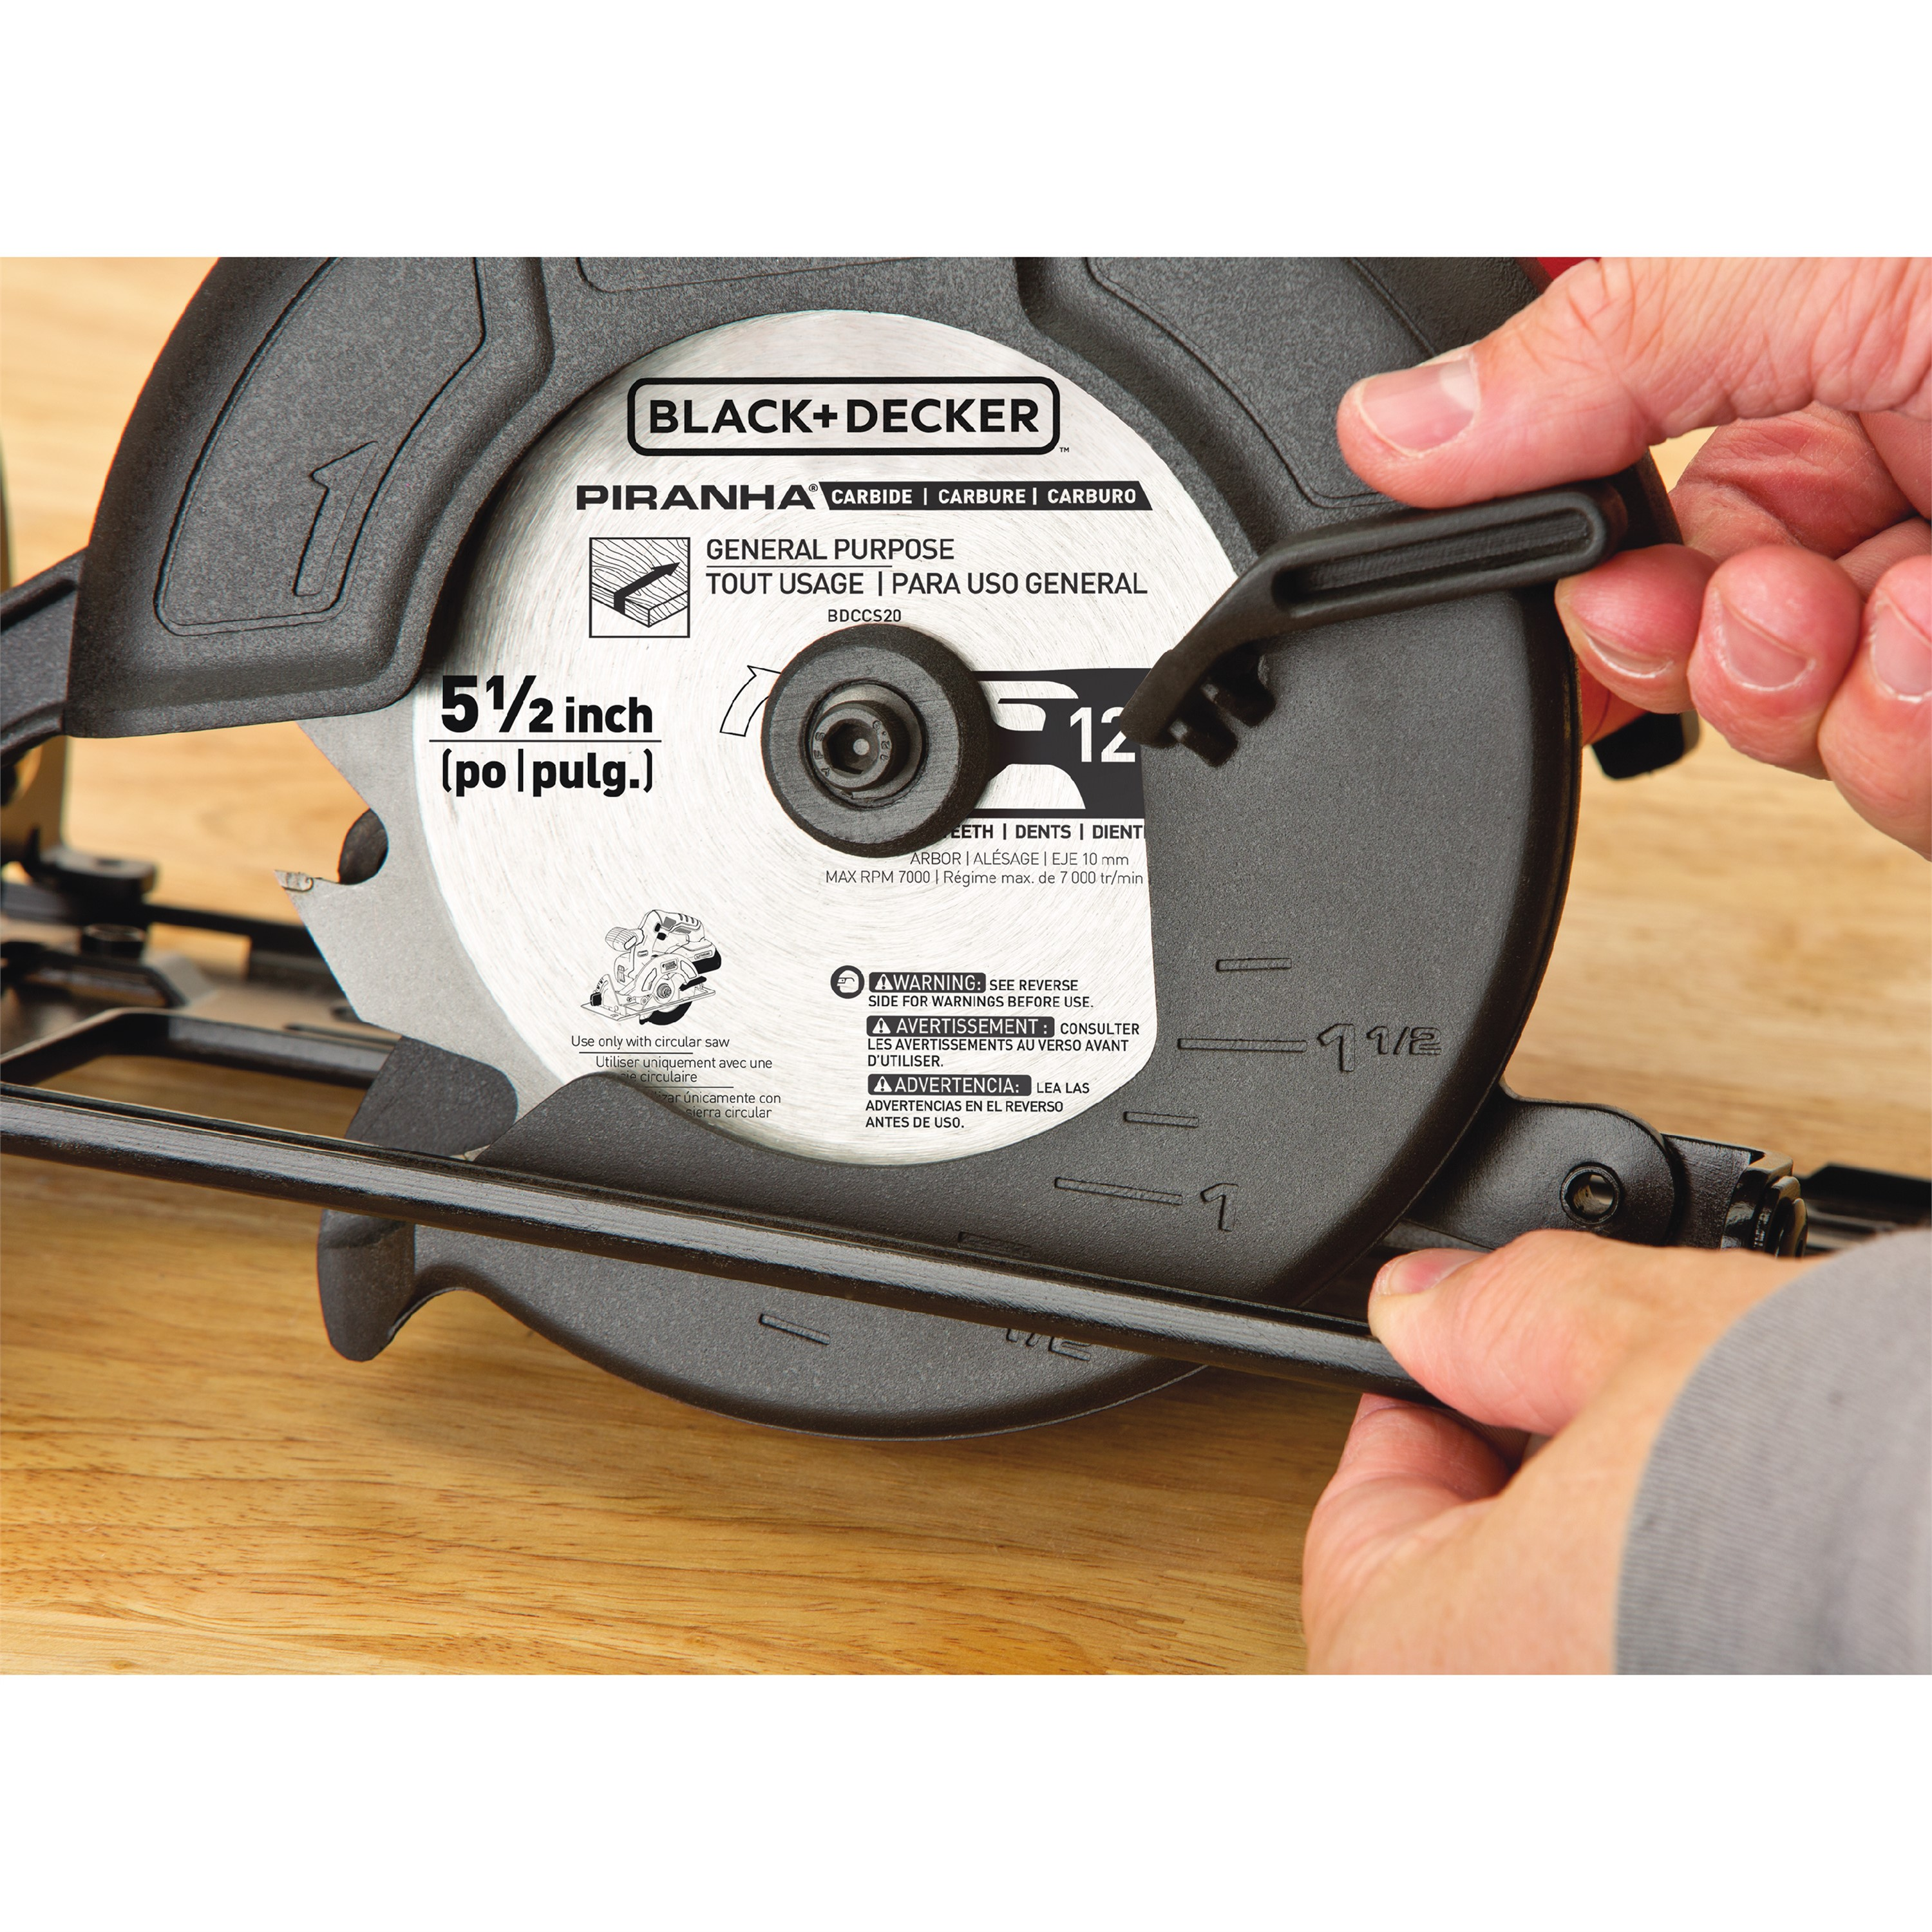 Blackdecker bdccs20b 20 volt max lithium ion cordless 5 12 in blackdecker bdccs20b 20 volt max lithium ion cordless 5 12 in circular saw bare tool no battery included walmart greentooth Gallery